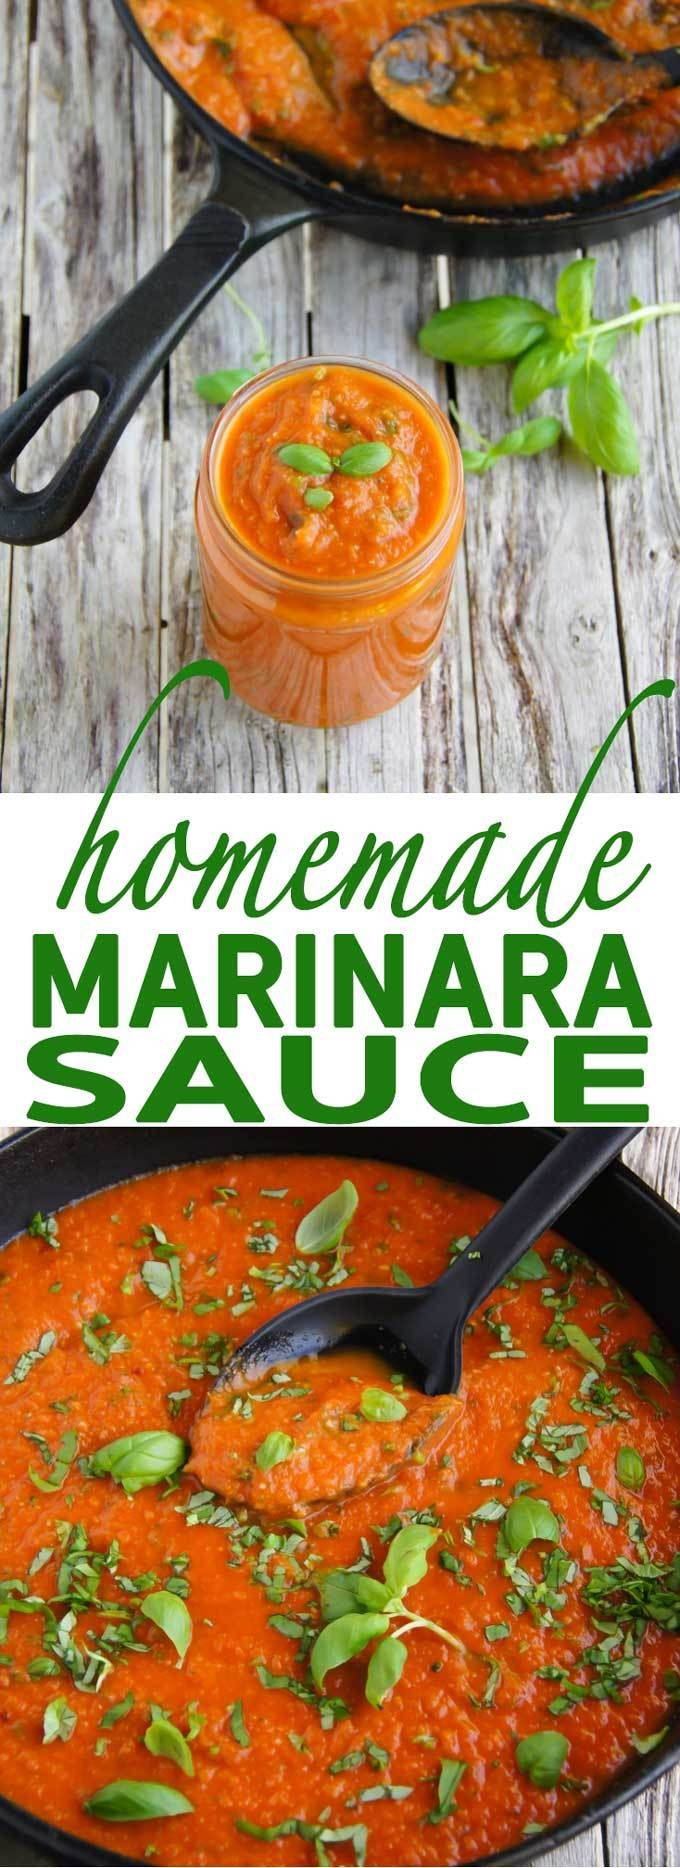 Authentic, Italian Homemade Marinara Sauce recipe is perfect on a pizza crust, with vegetables or as a soup base. Delicious, easy and quick!